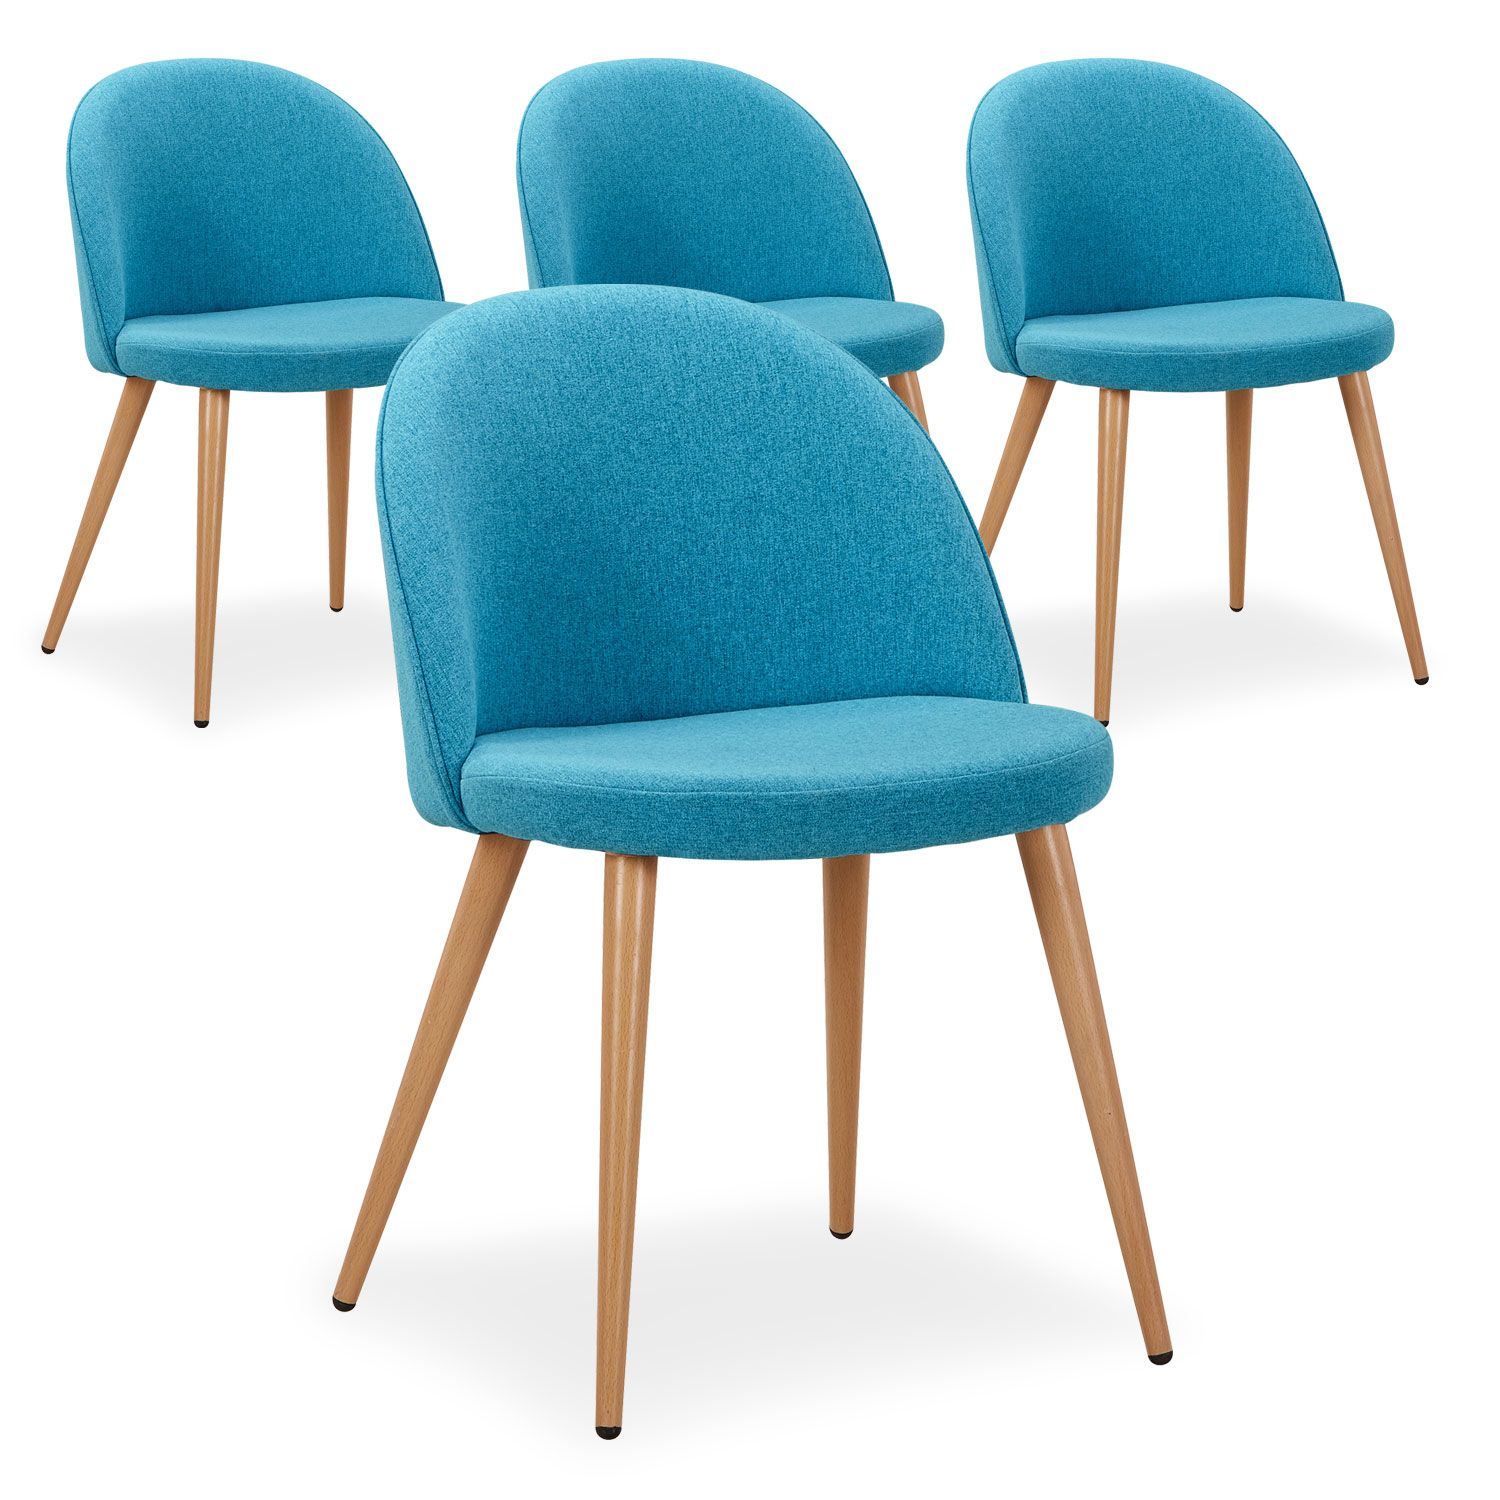 lot de 4 chaises scandinaves eliott tissu bleu. Black Bedroom Furniture Sets. Home Design Ideas